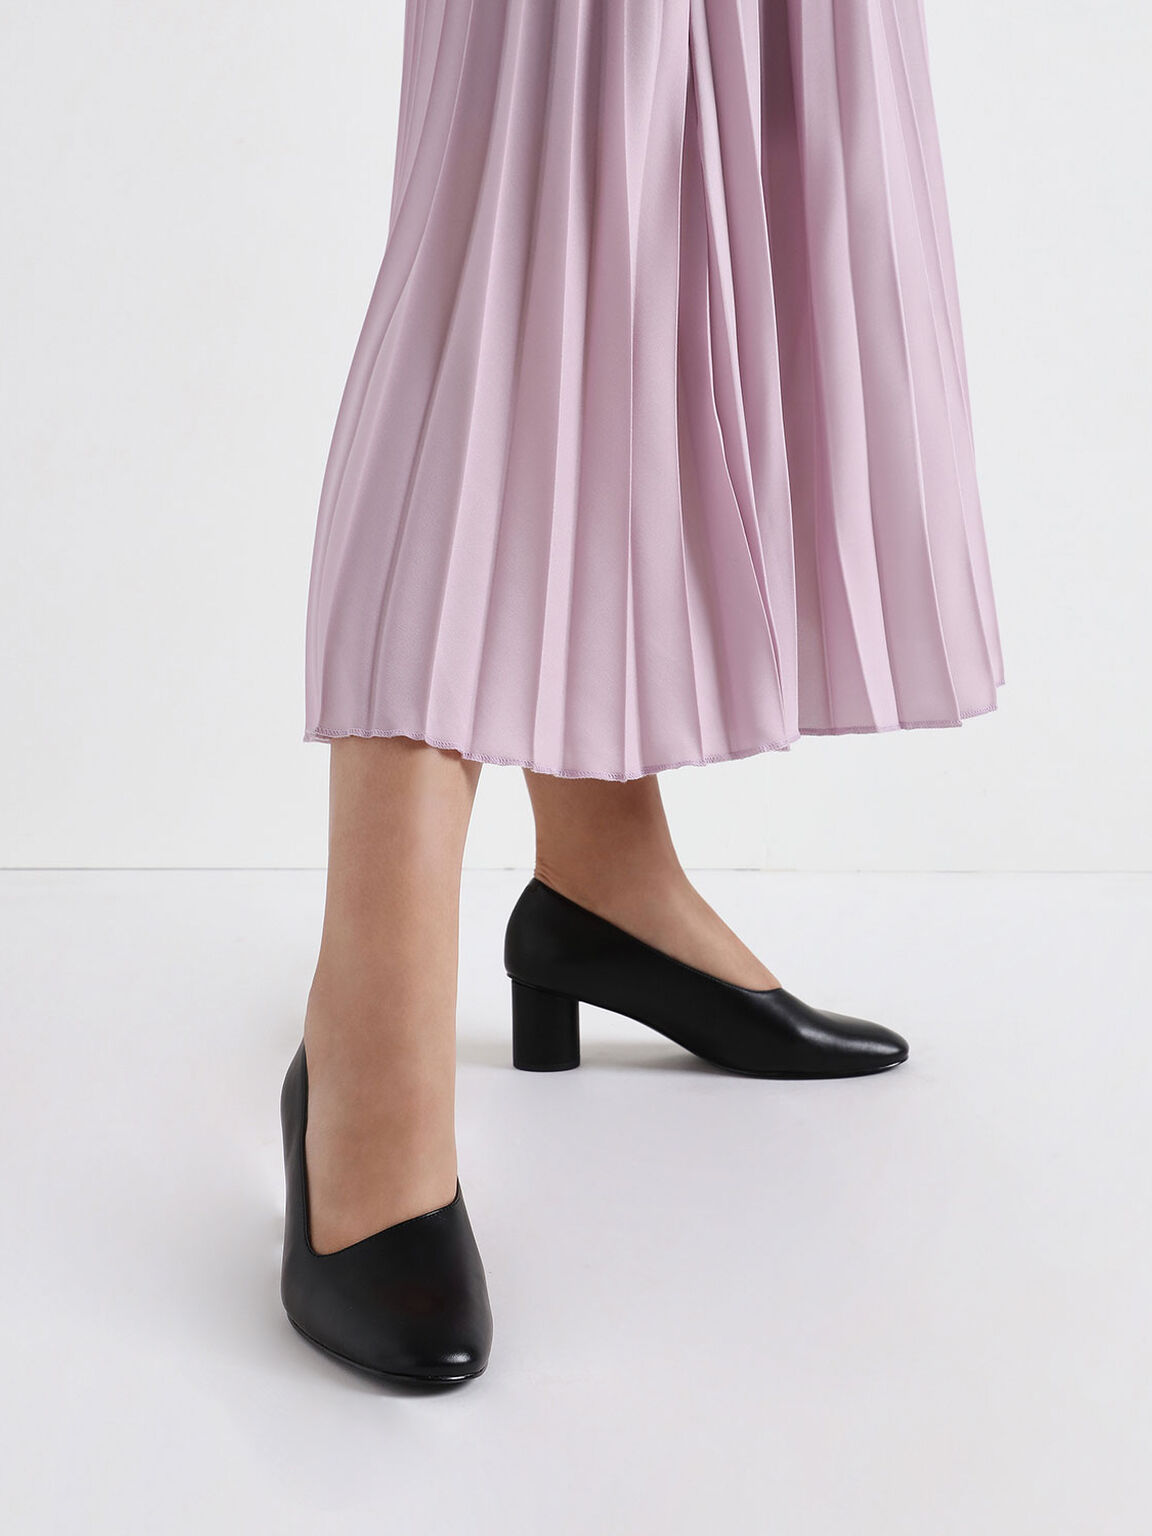 Asymmetric-Cut Cylindrical Heel Pumps, Black, hi-res